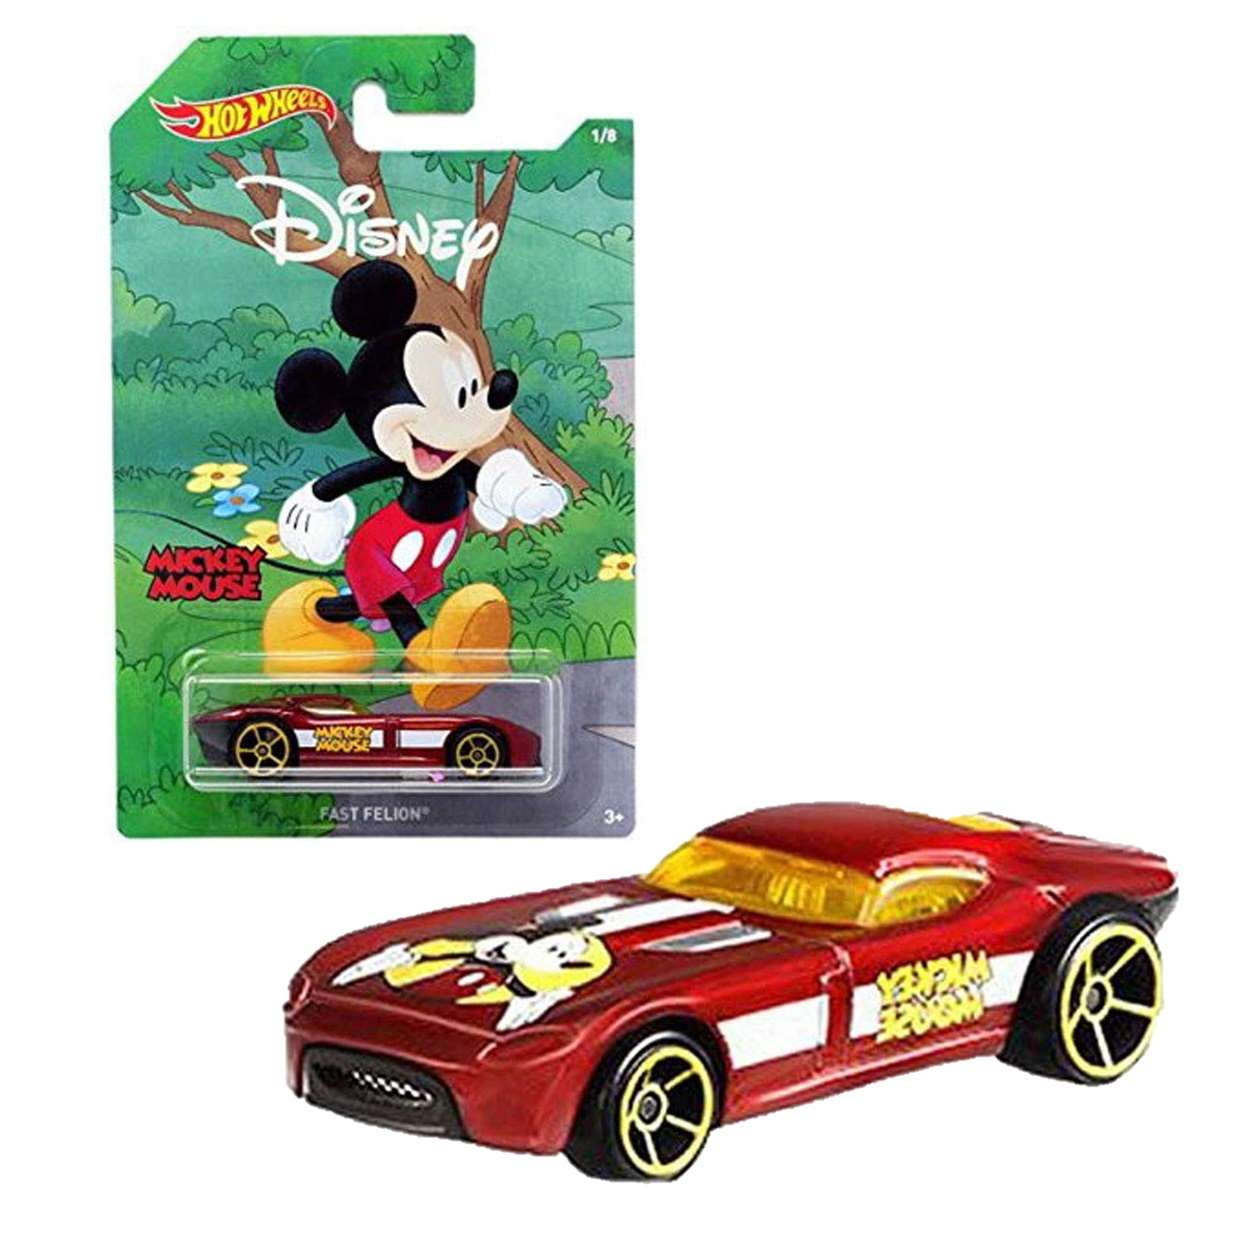 Mickey Mouse Fast Felion 1/8 Hot Wheels Mickey And Friends